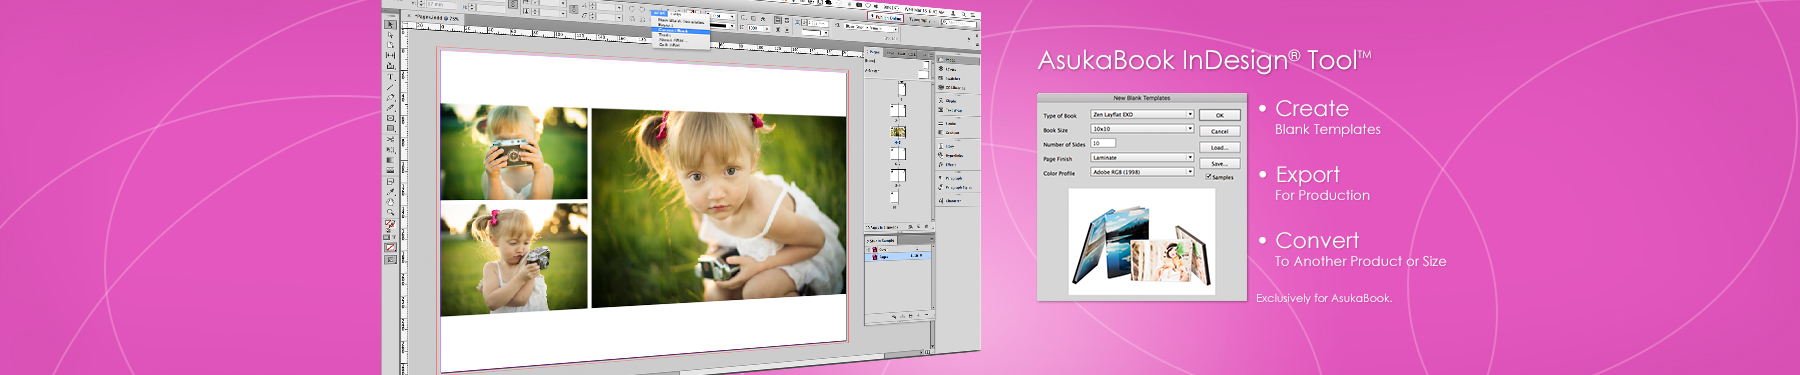 AsukaBoook InDesign Tool Banner